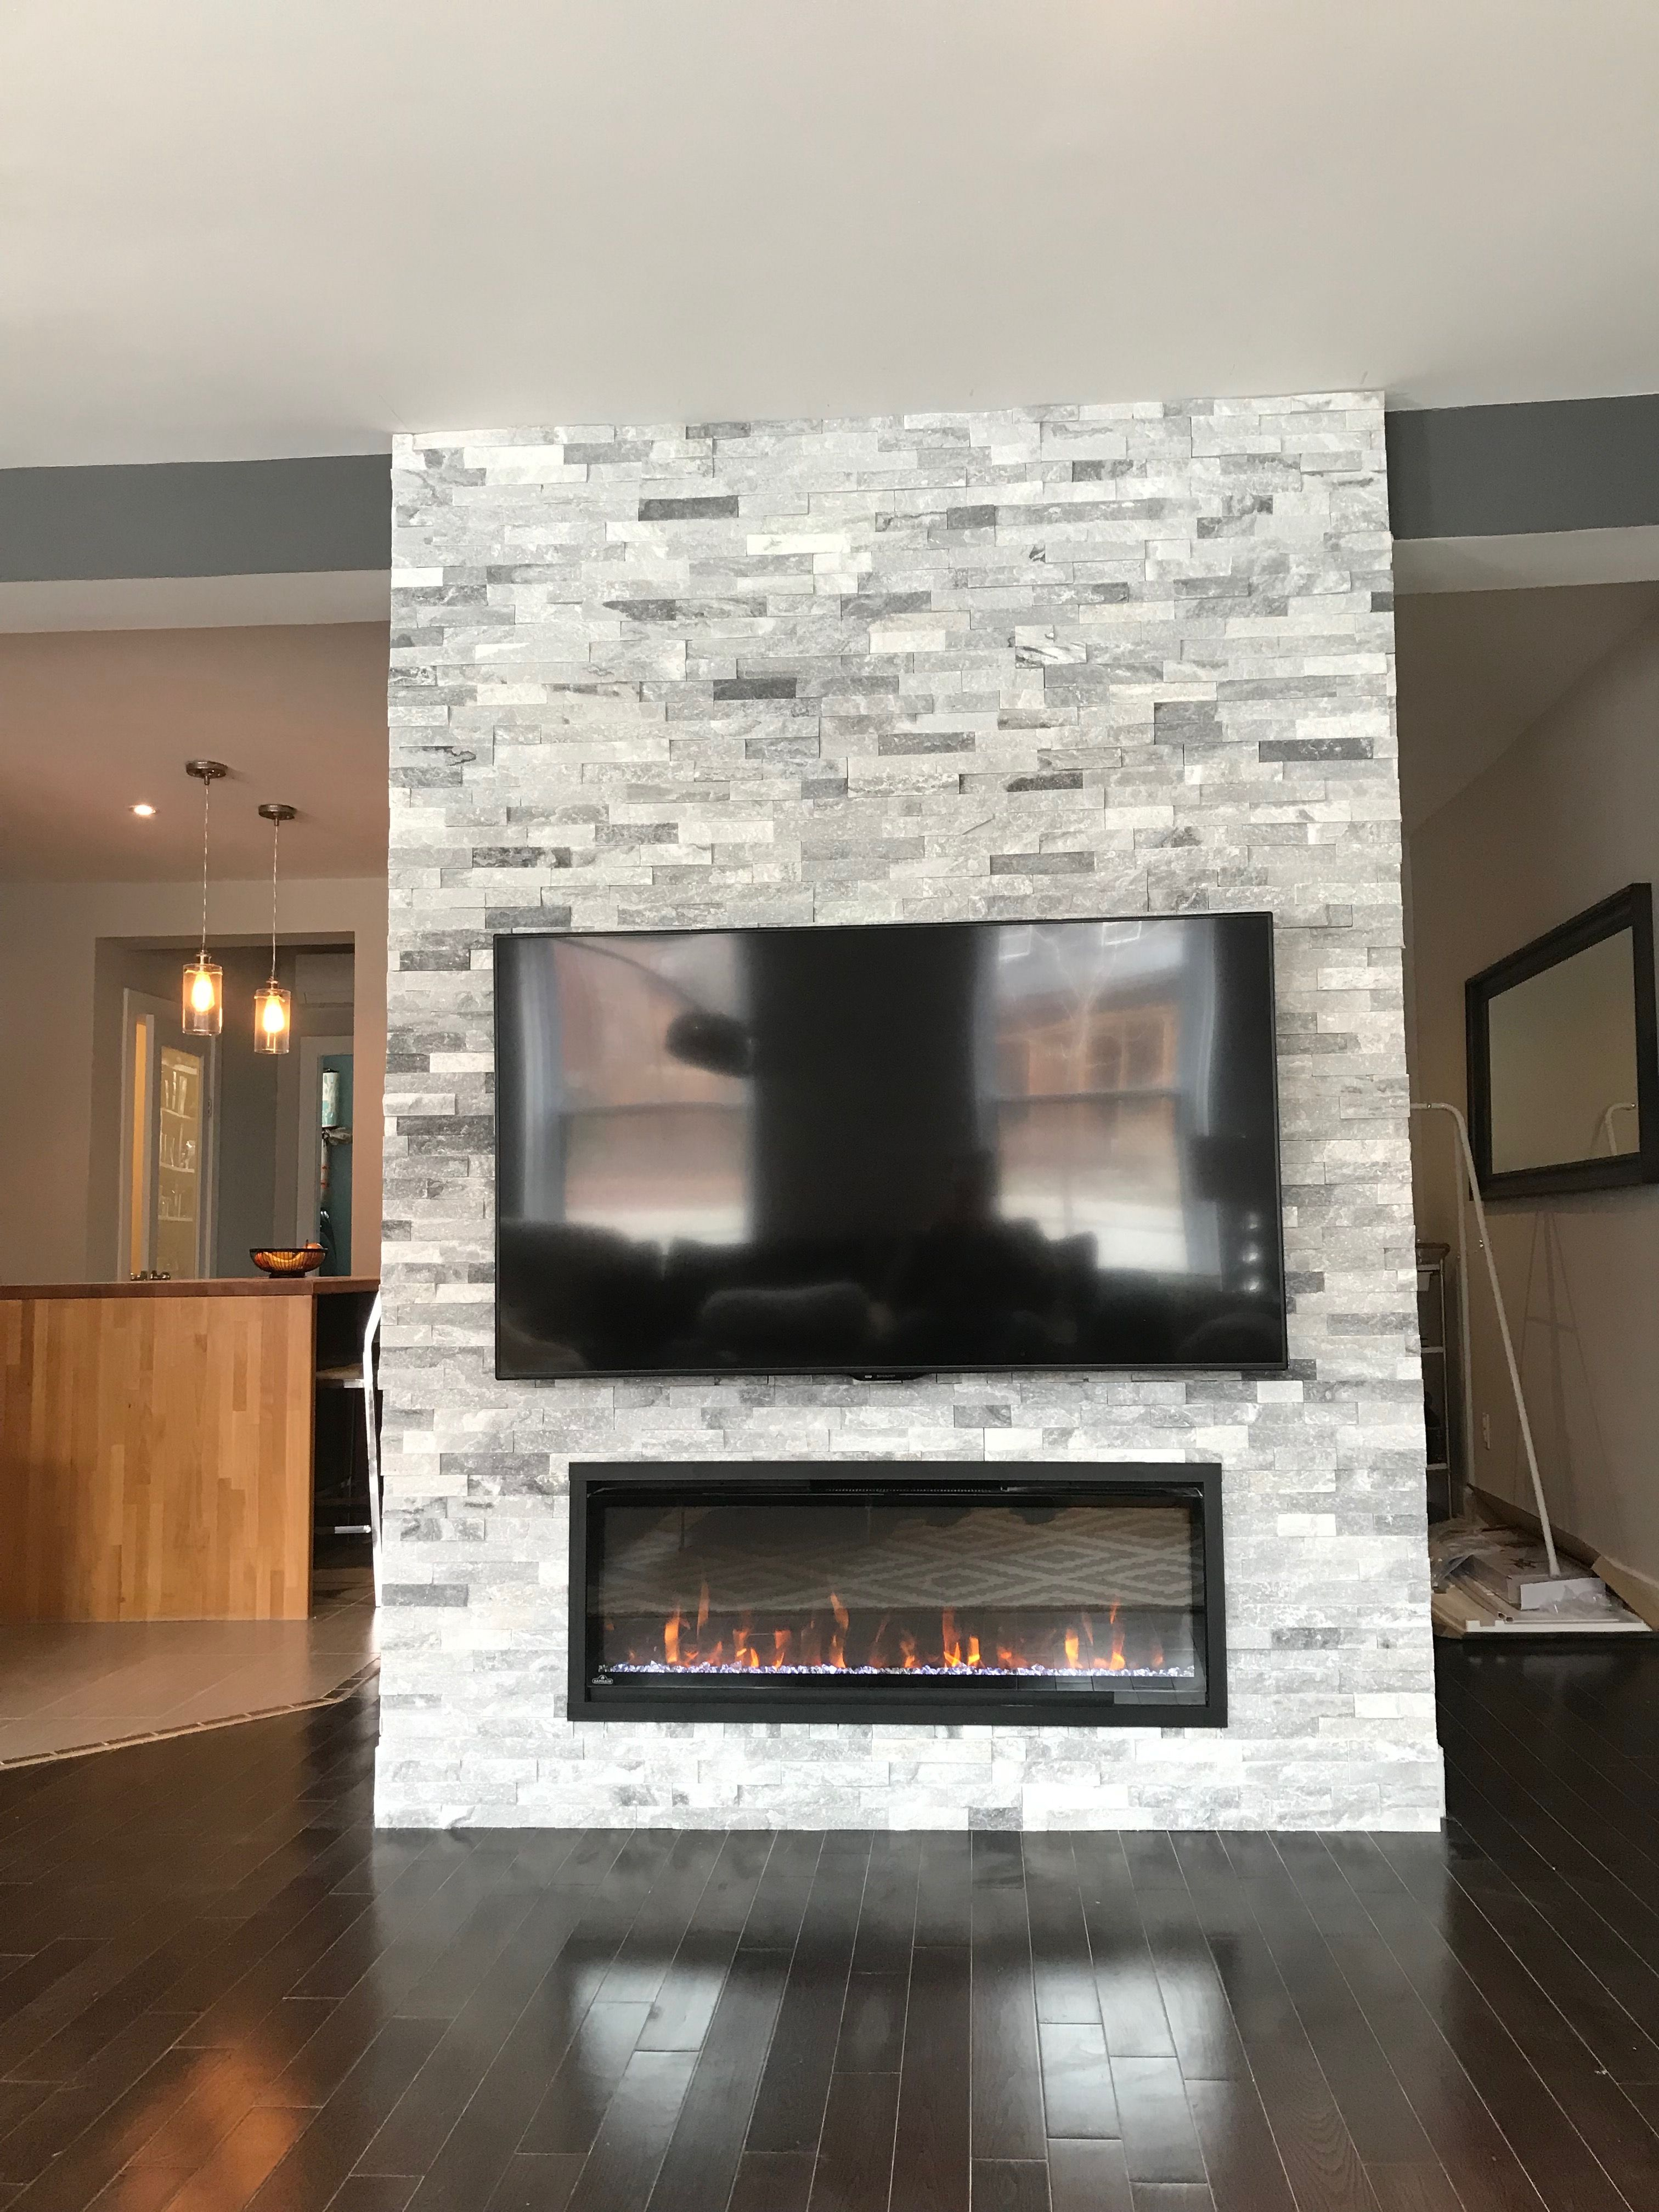 Pointe St Charles Accent Wall Impex Stones Fireplace Tv Mount